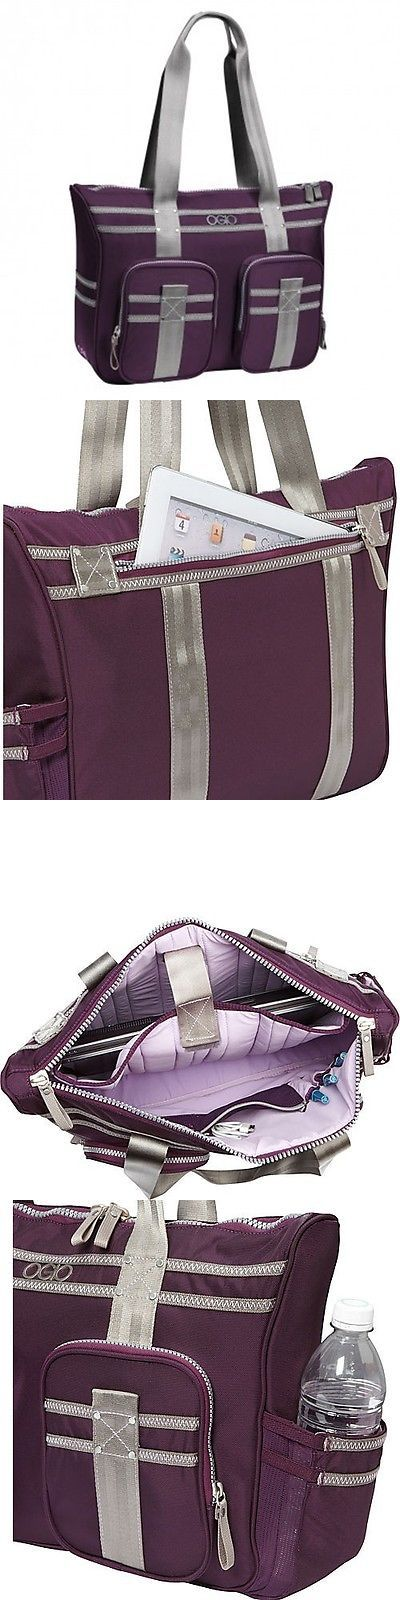 Briefcases and Laptop Bags 169293: Lisbon Business Tote In Plum And Gray Briefcase Work Women Laptop Purple Bag -> BUY IT NOW ONLY: $99.95 on eBay!